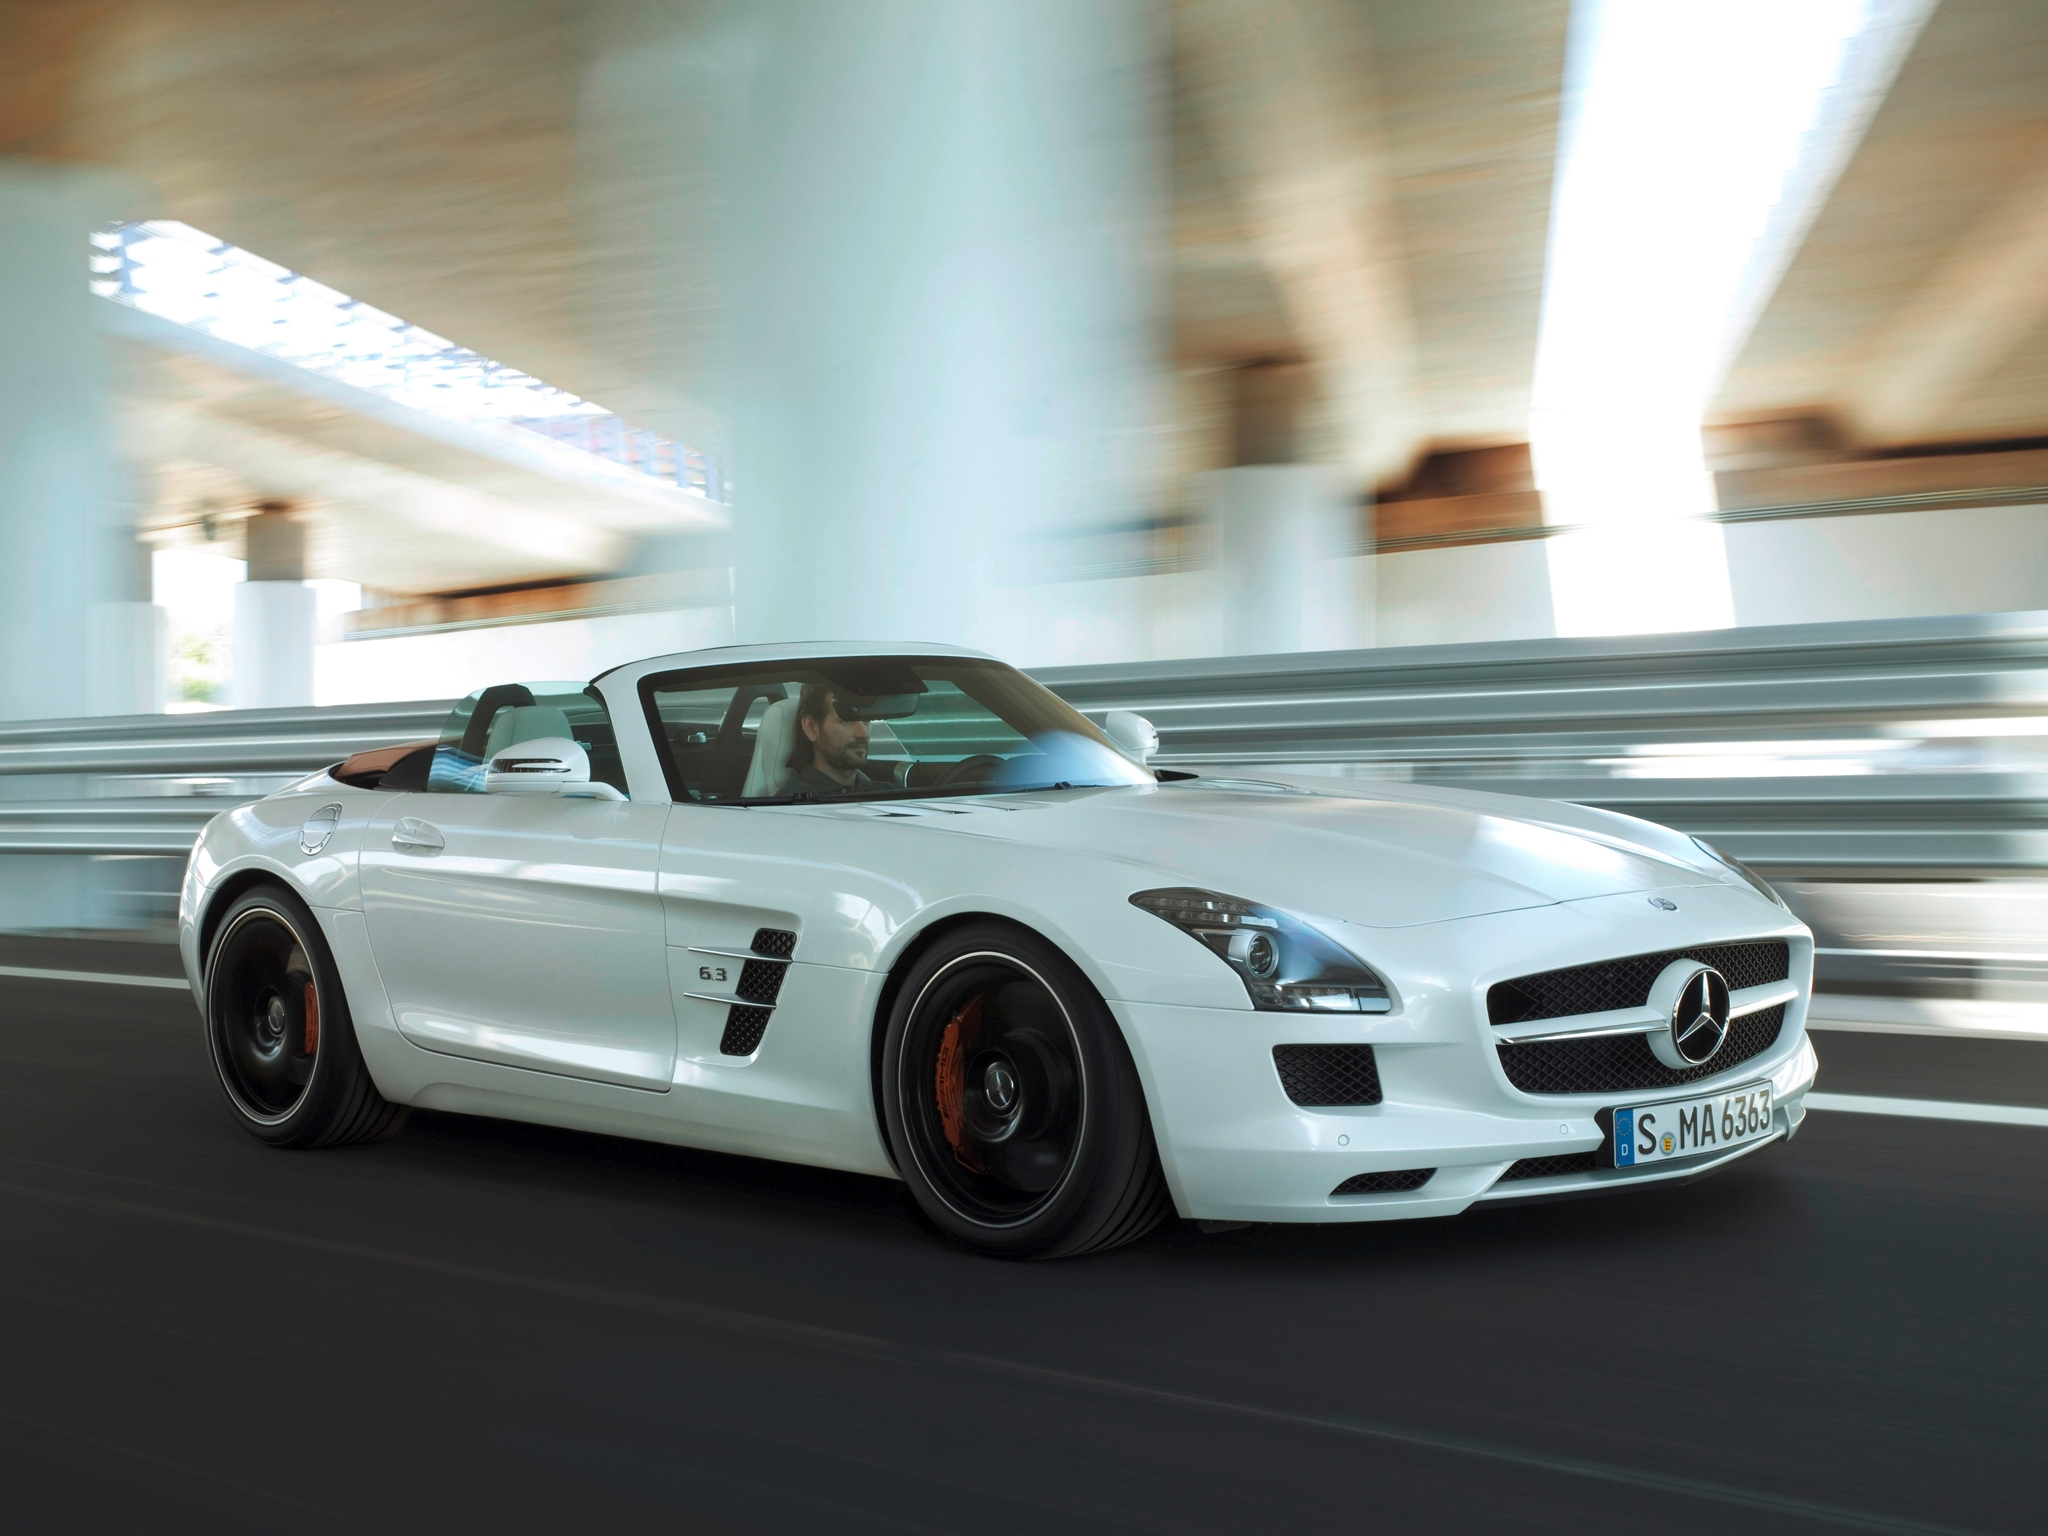 Mercedes - Benz Sls Amg Sls Amg Roadster C197 Sls Amg Mercedes Benz Base